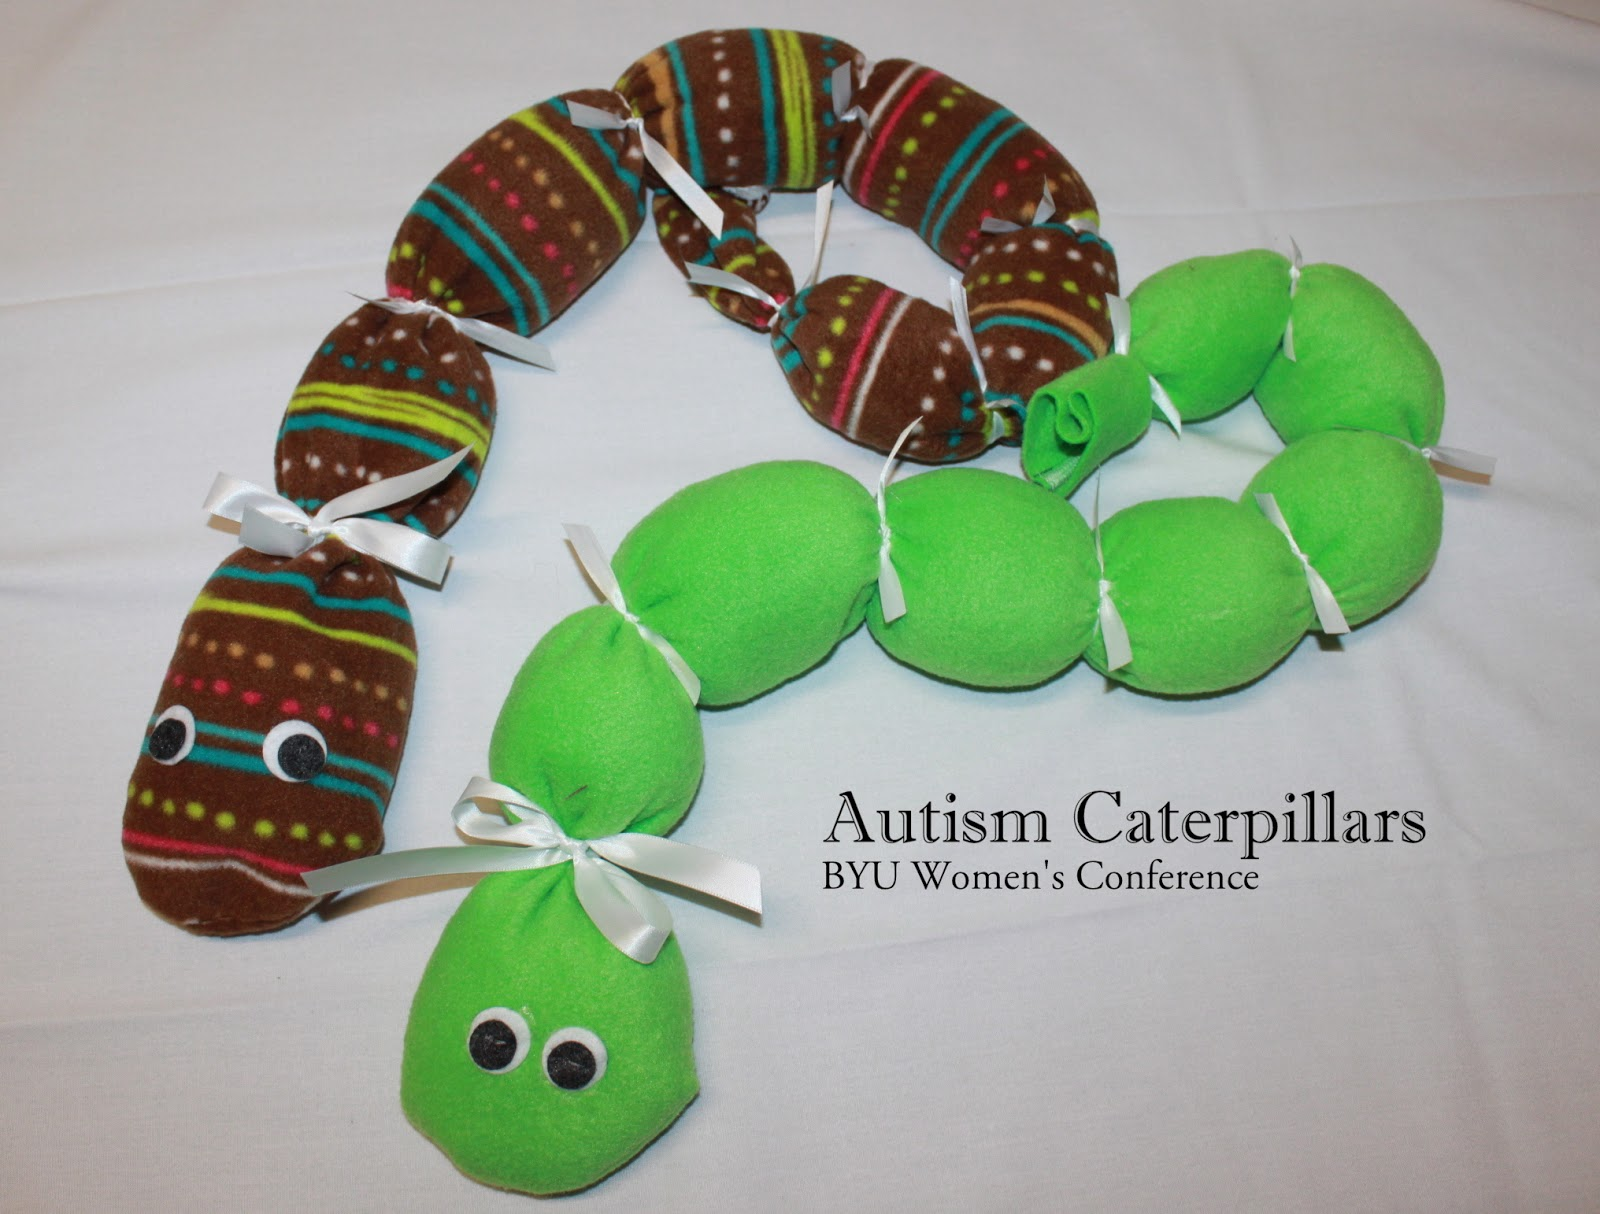 byu women 39 s conference service ideas autism caterpillar On craft ideas for autistic students